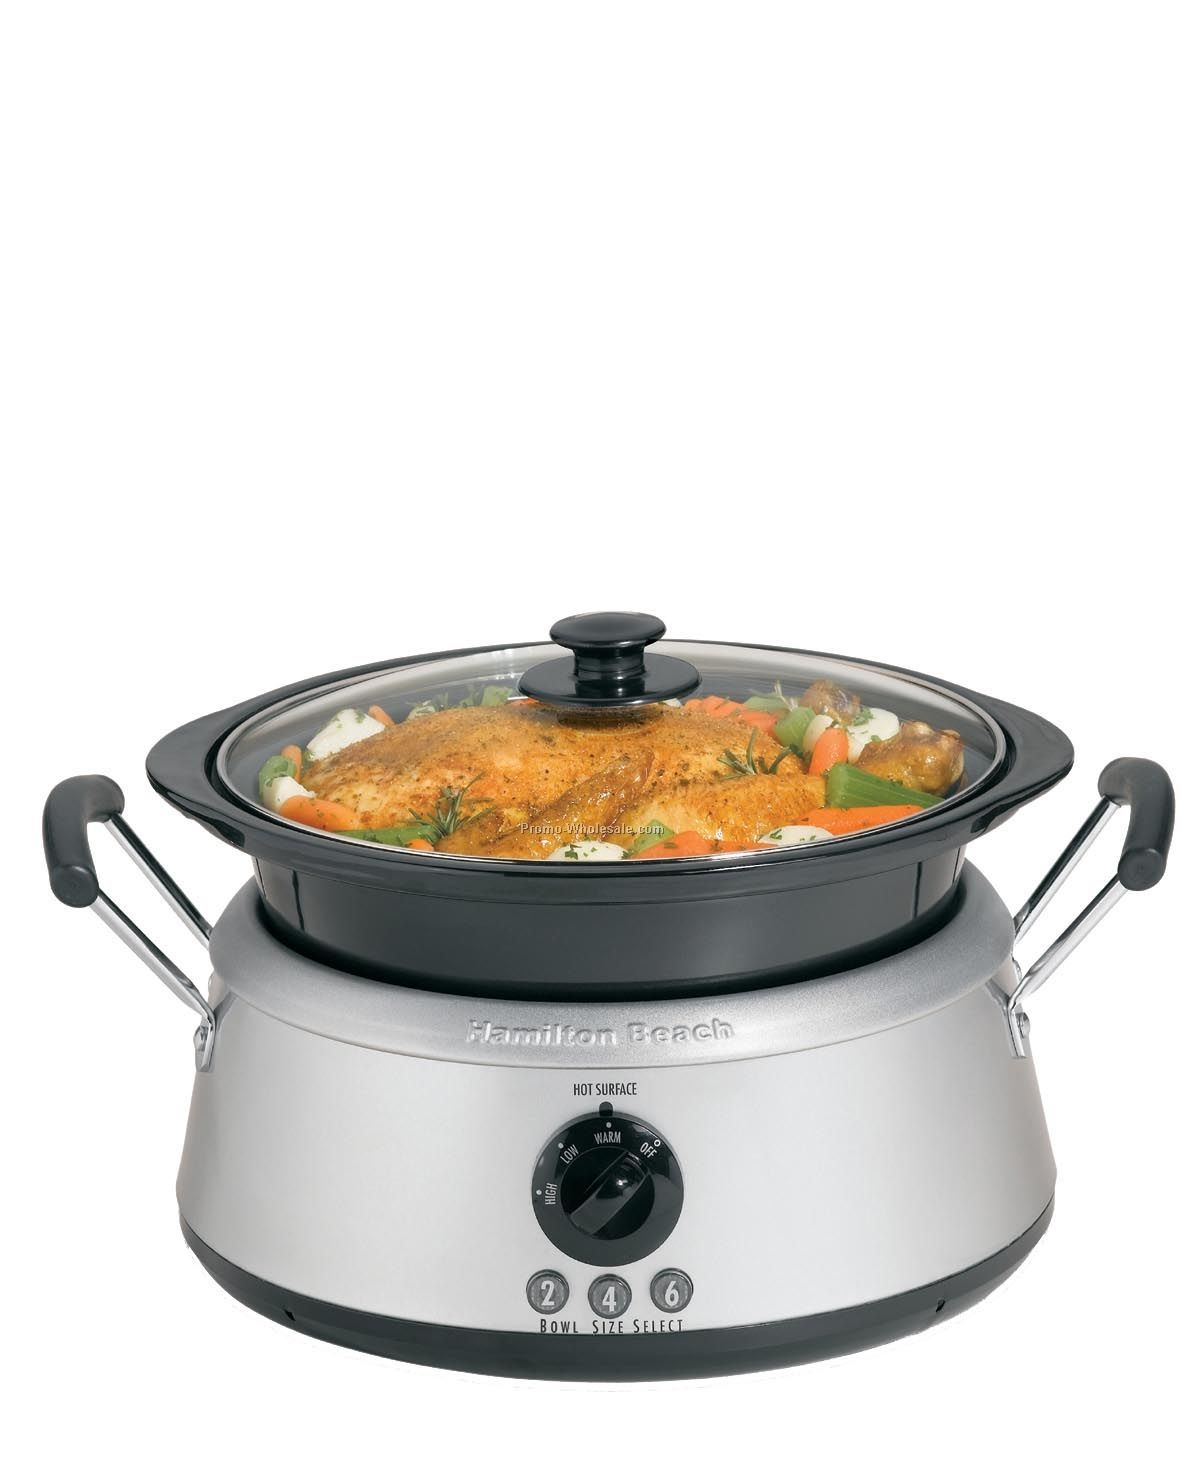 Hamilton Beach 3-in-one Slow Cooker